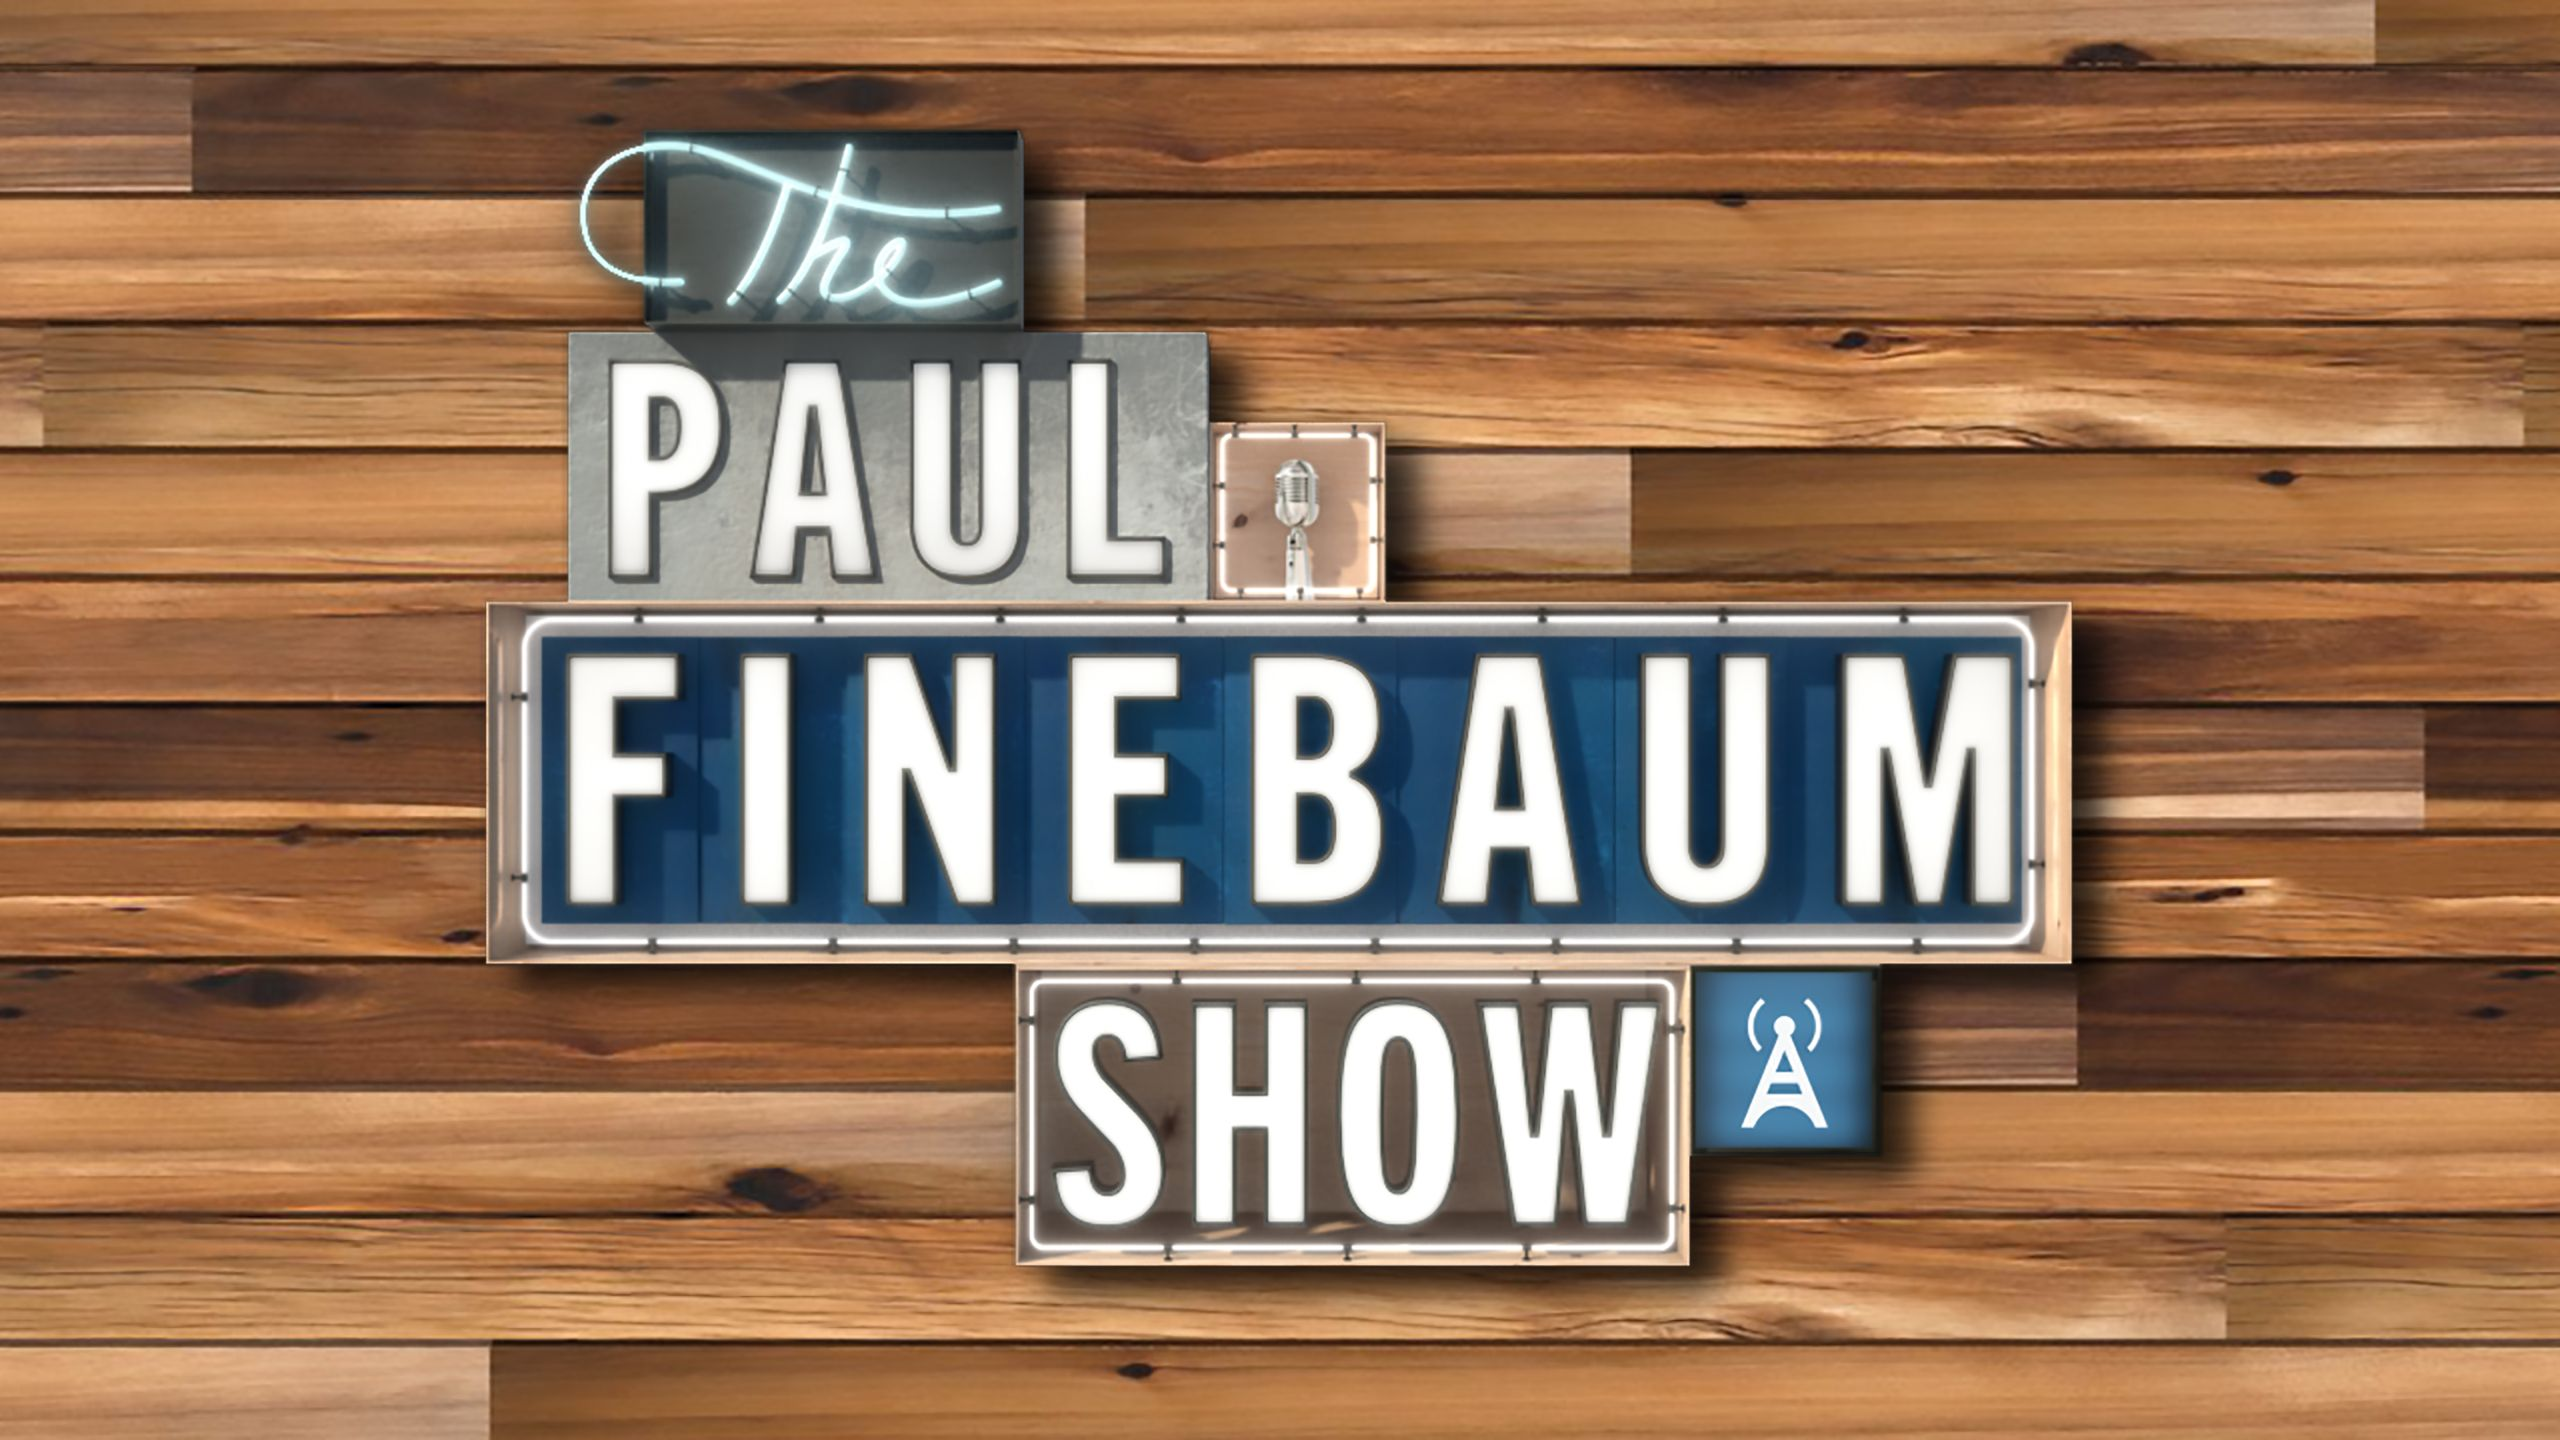 Thu, 3/22 - The Paul Finebaum Show